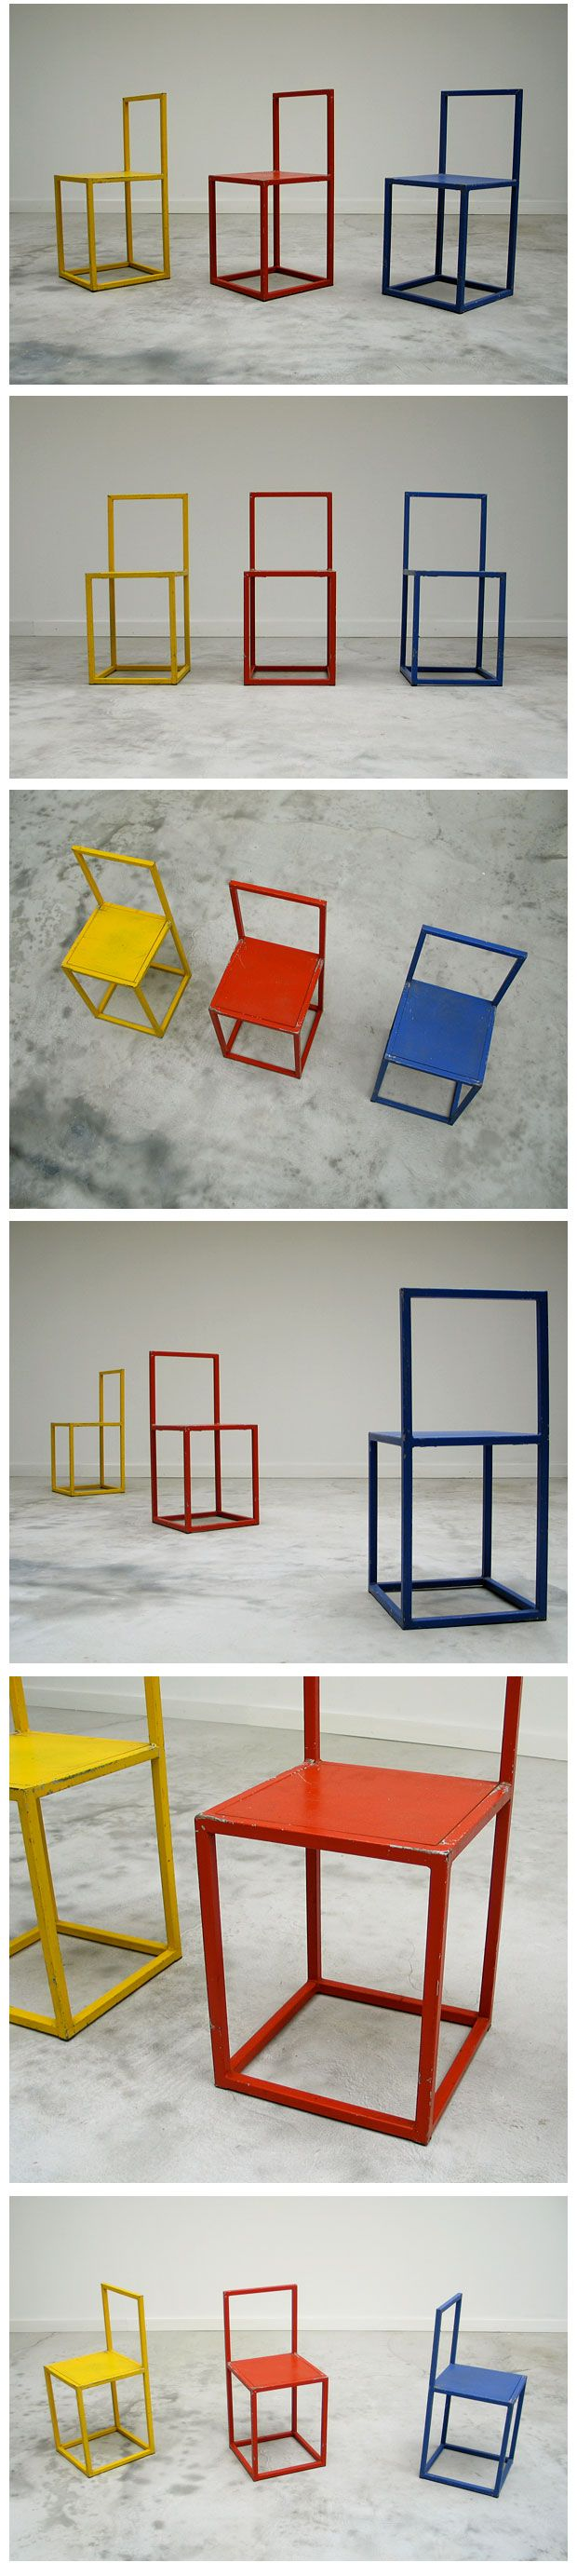 3 Cubistic chairs Donald Judd Large